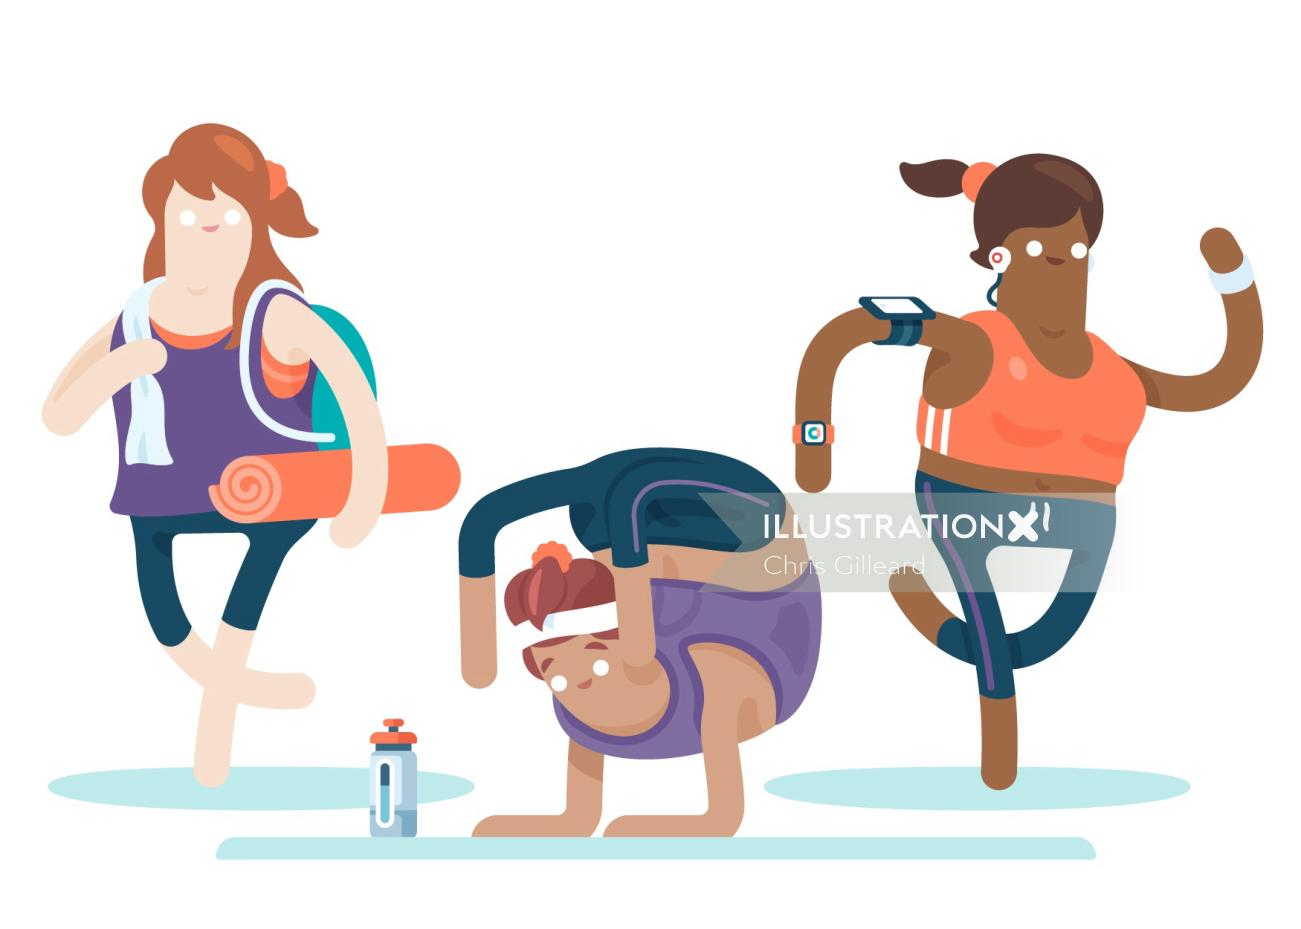 exercise to stay fit illustration by Chris Gilleard